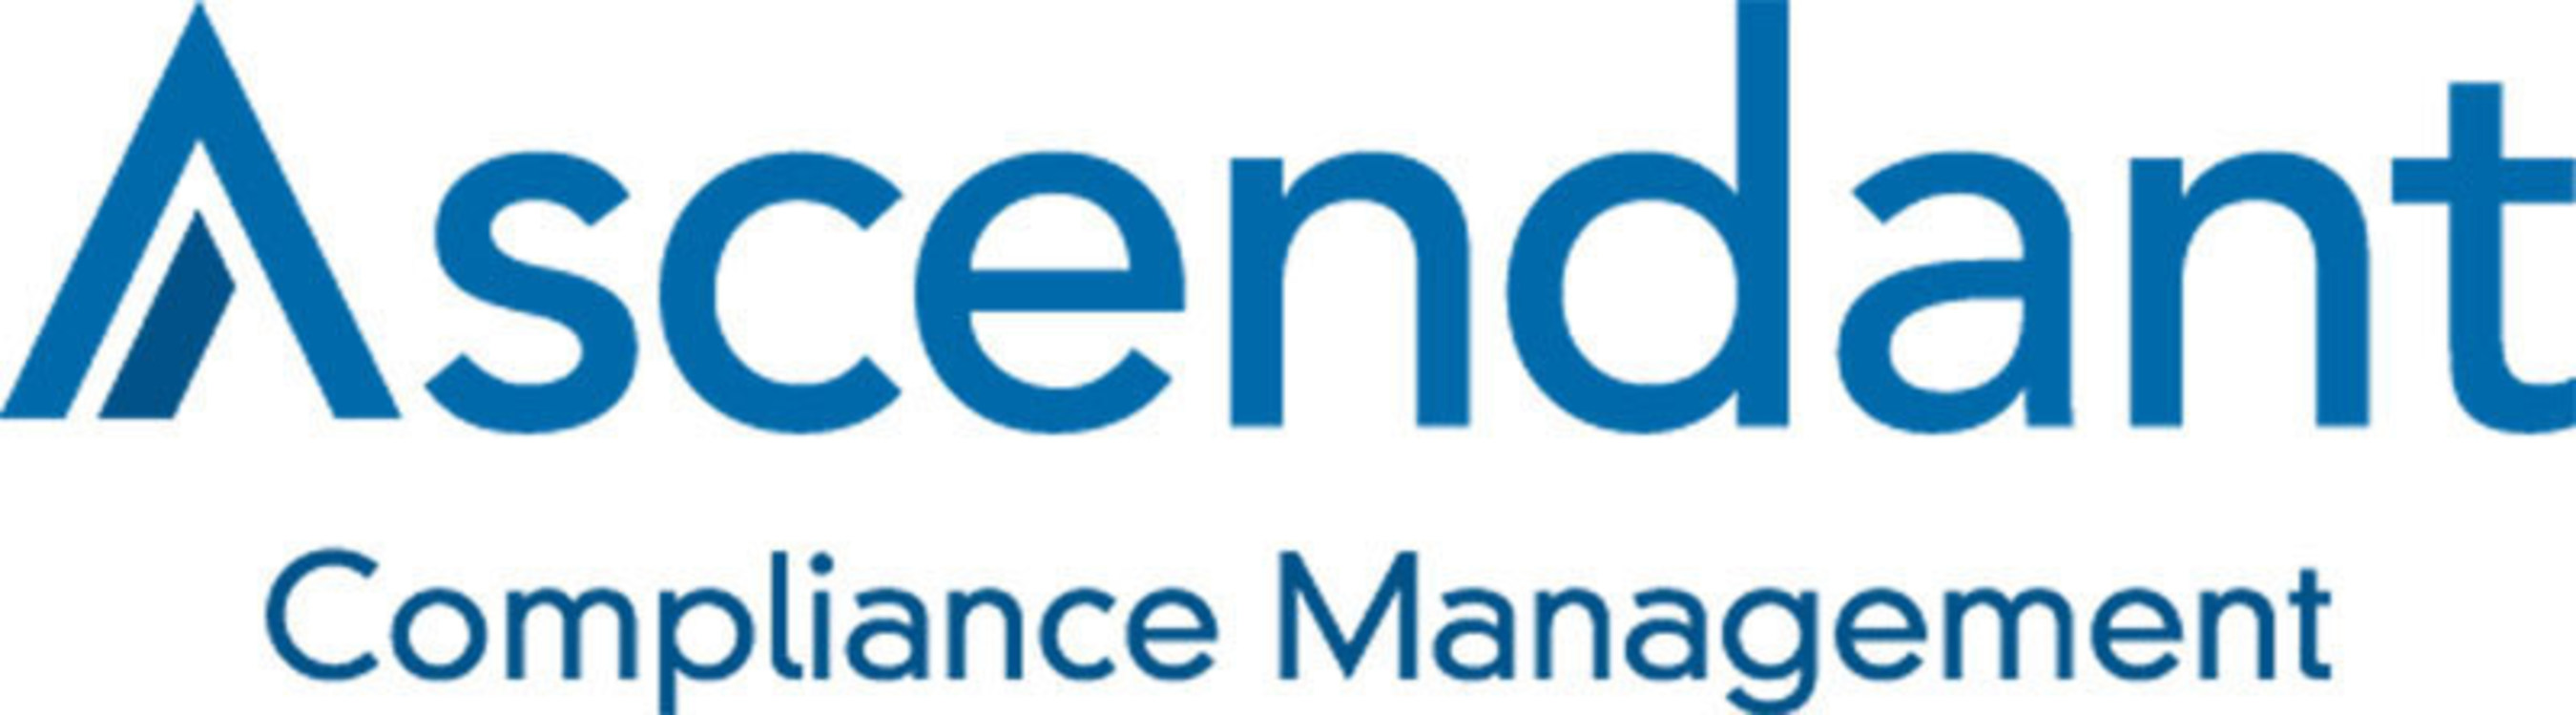 Ascendant Compliance Management, partnering with you to make compliance a source of strength.